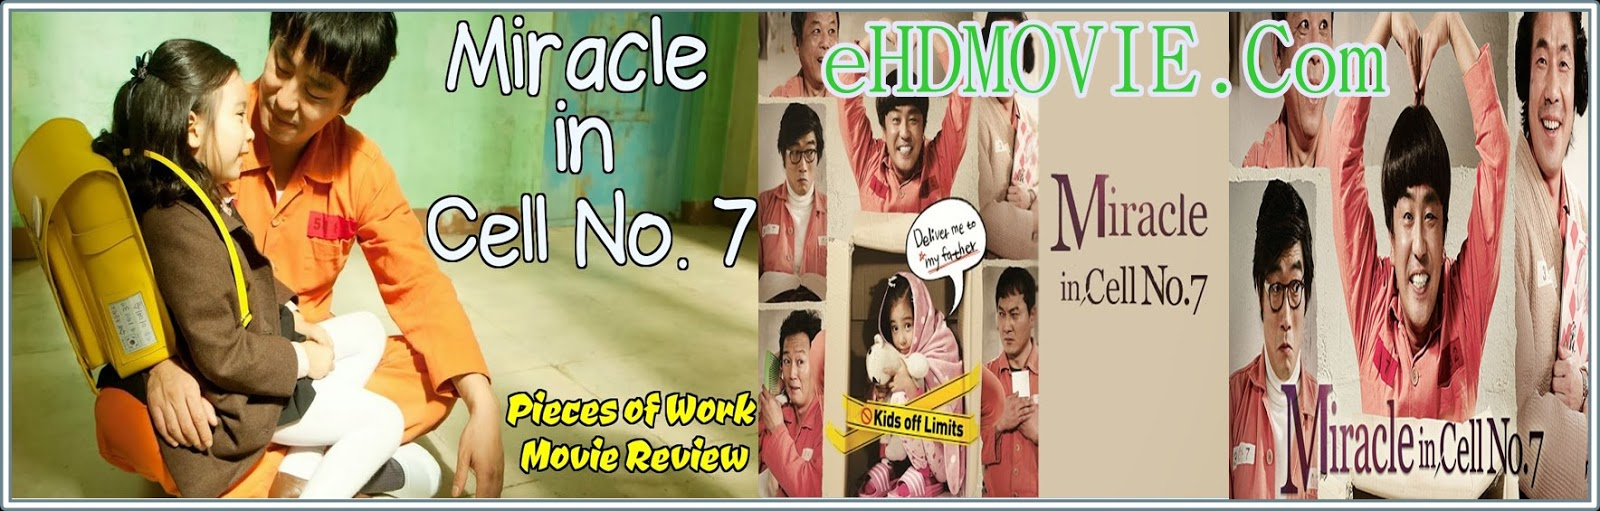 Miracle in Cell No. 7 2013 Full Movie Korean 720p - 480p ORG BRRip 450MB - 950MB ESubs Free Download